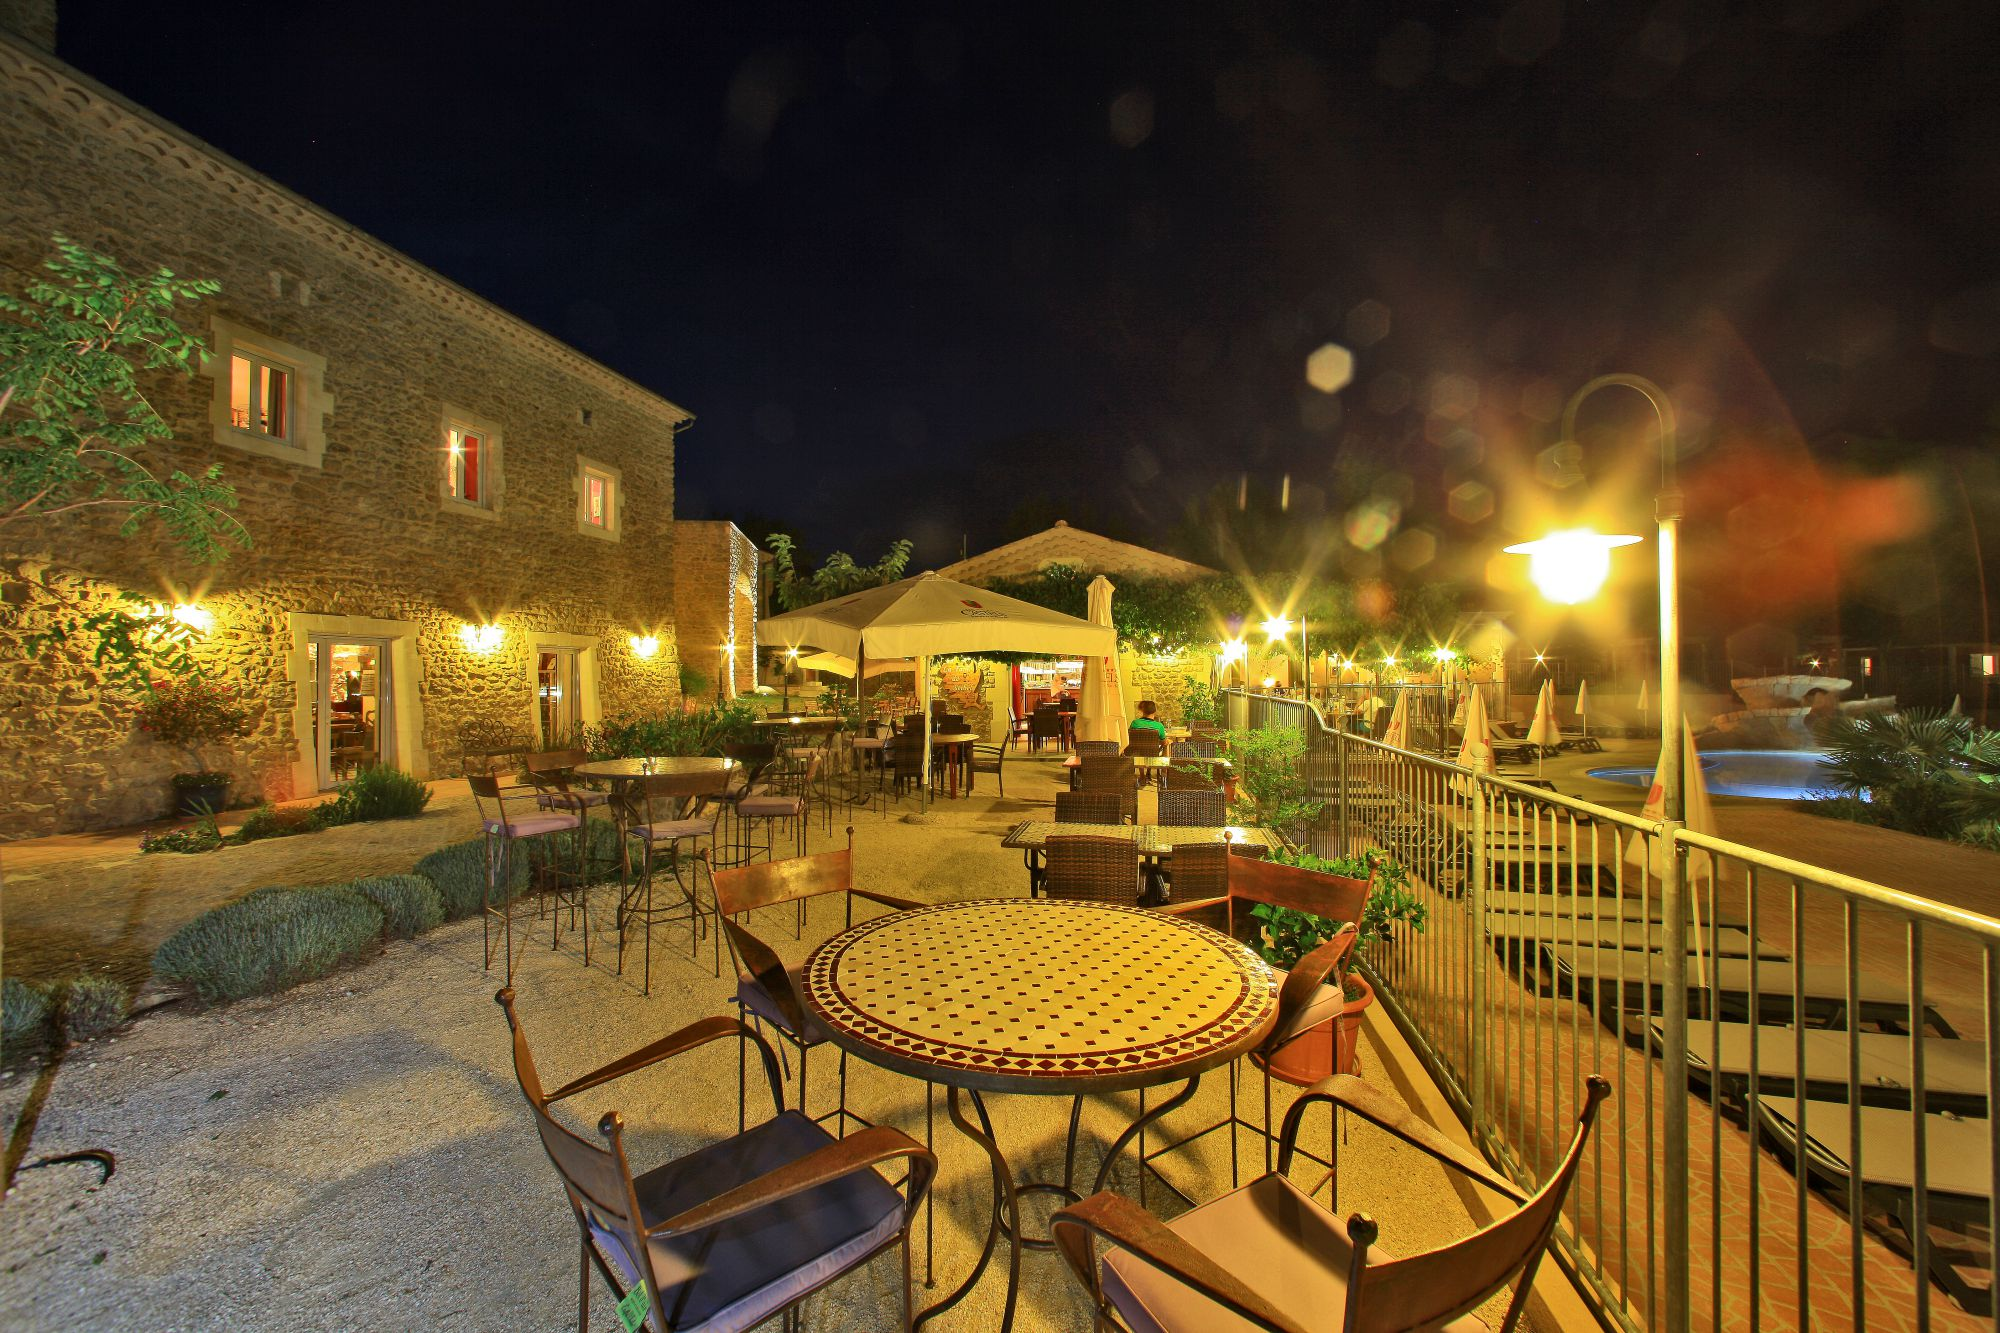 domaine sevenier camping 5 etoiles ardeche restaurant galerie photo4 - On site